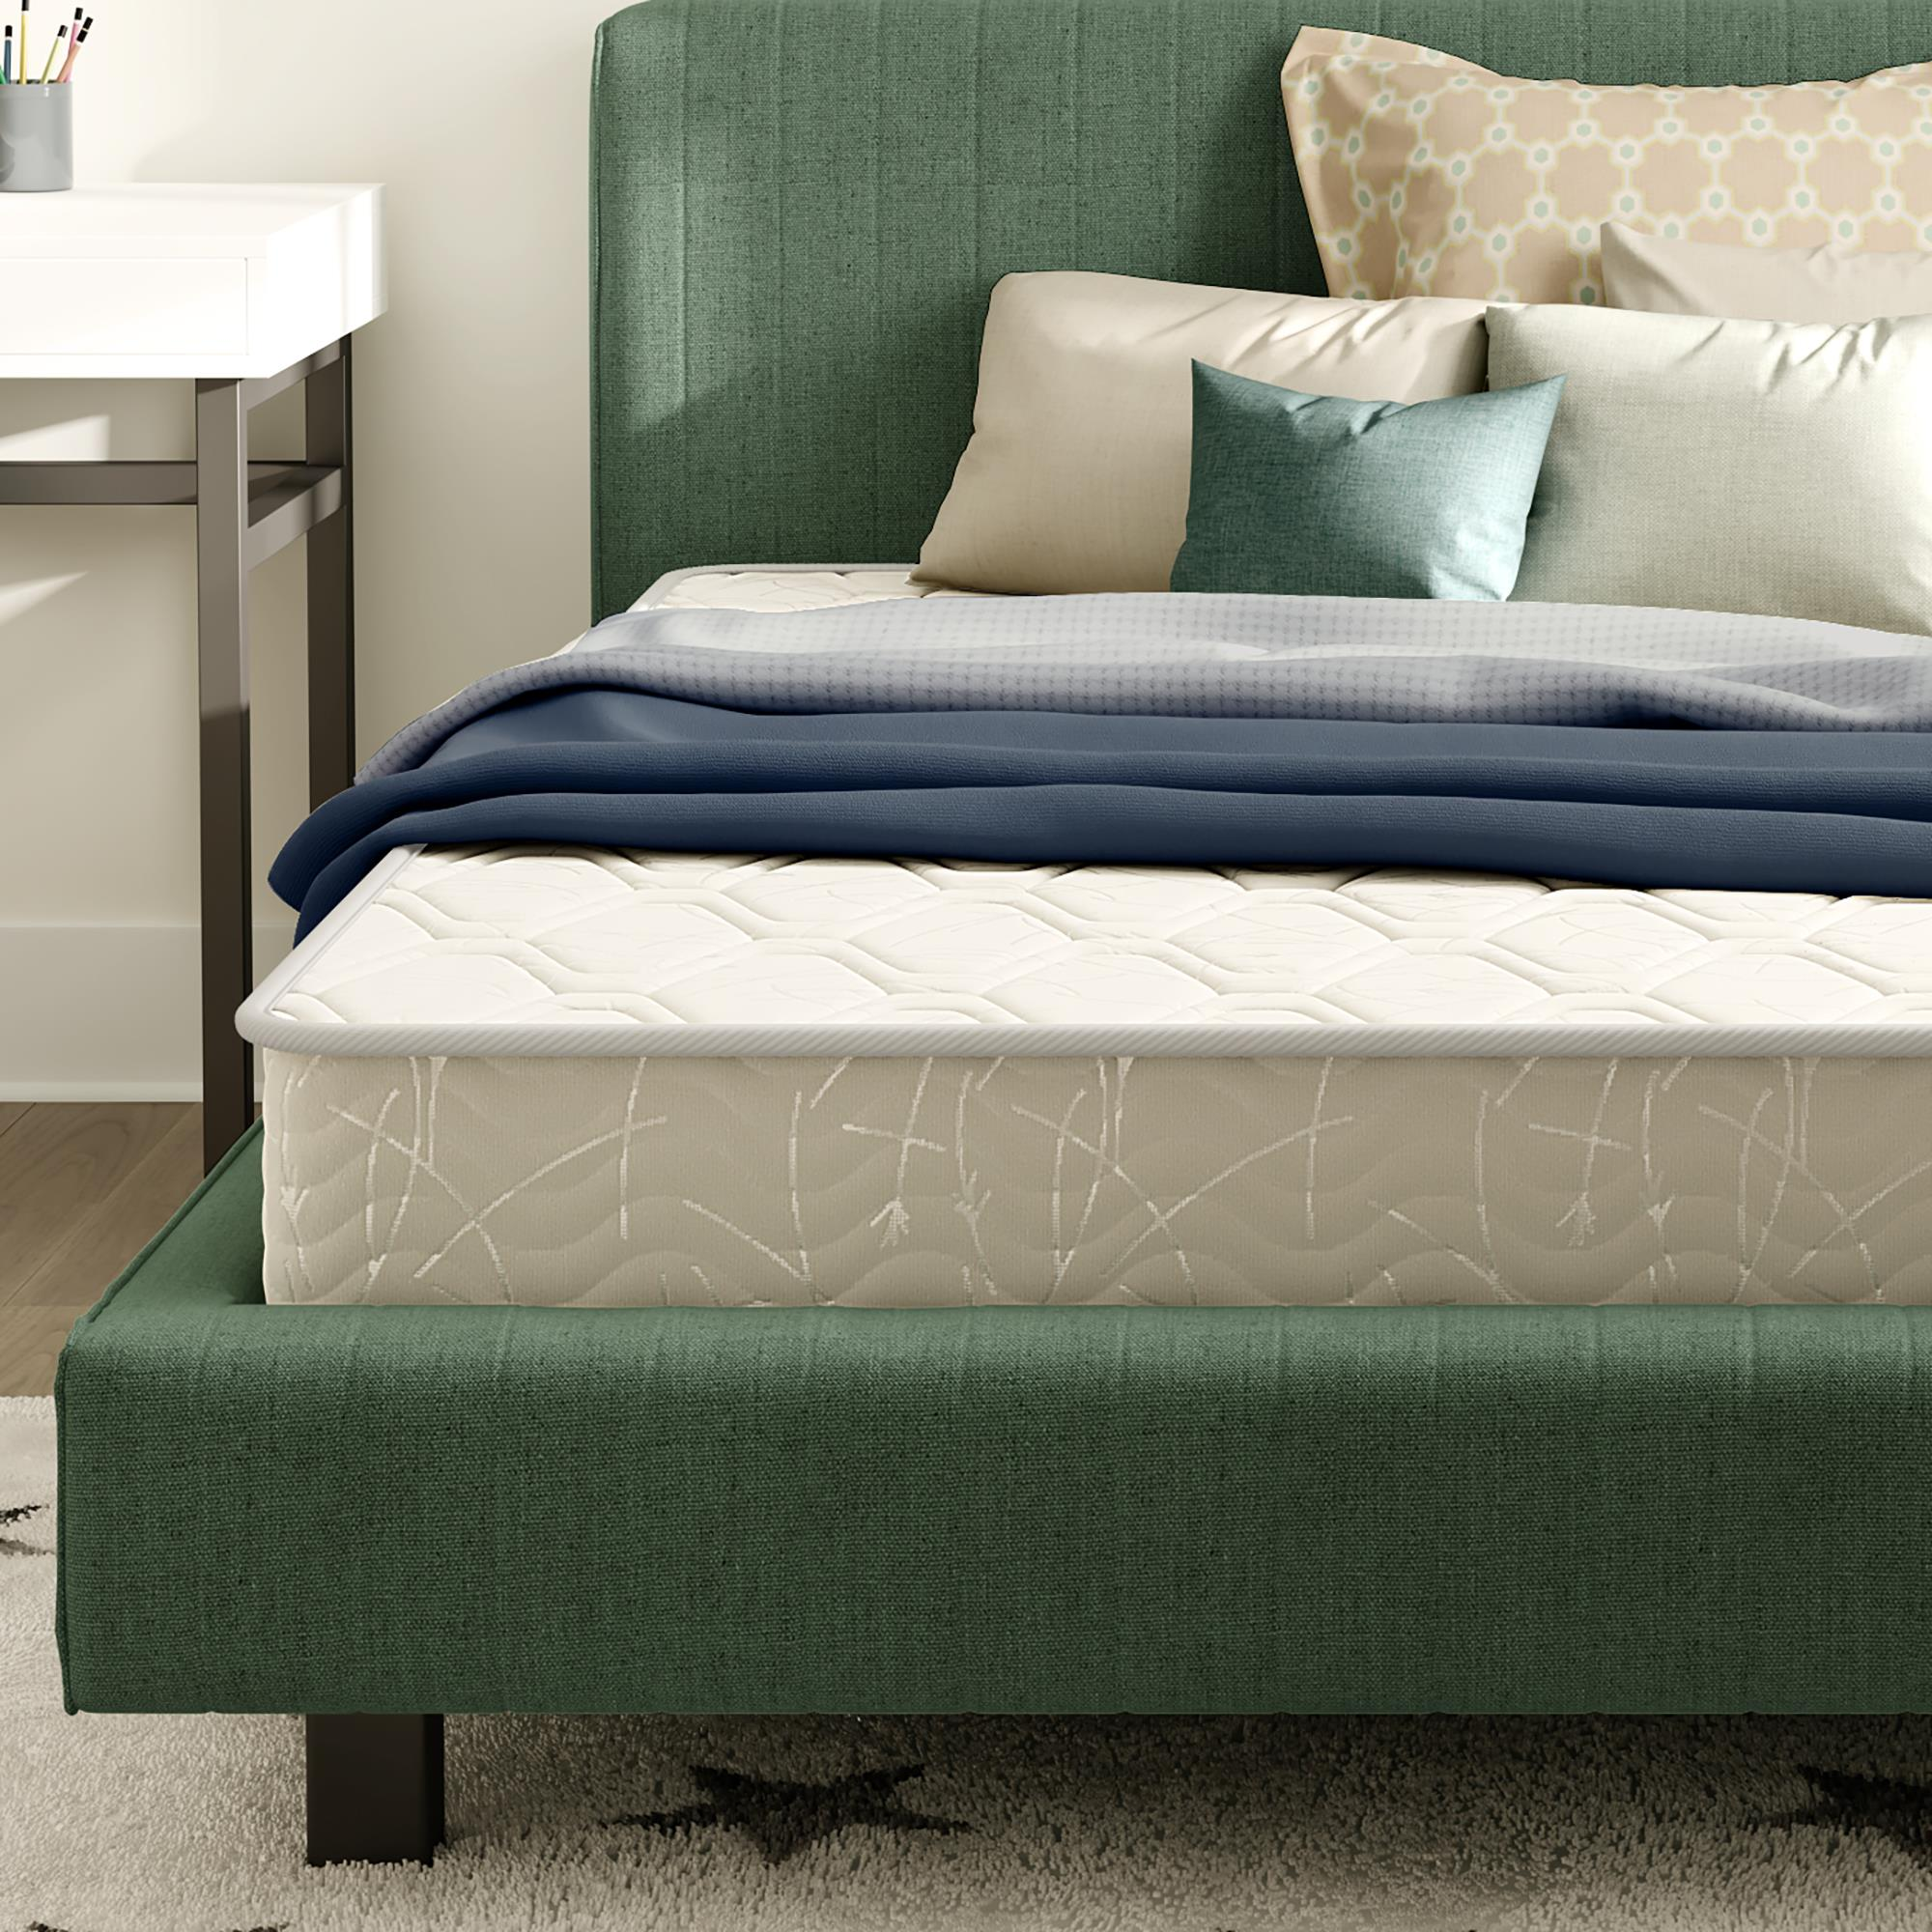 Signature Sleep Gold CertiPUR-US Select 8 inch Coil Mattress, Multiple Sizes by Dorel Home Products